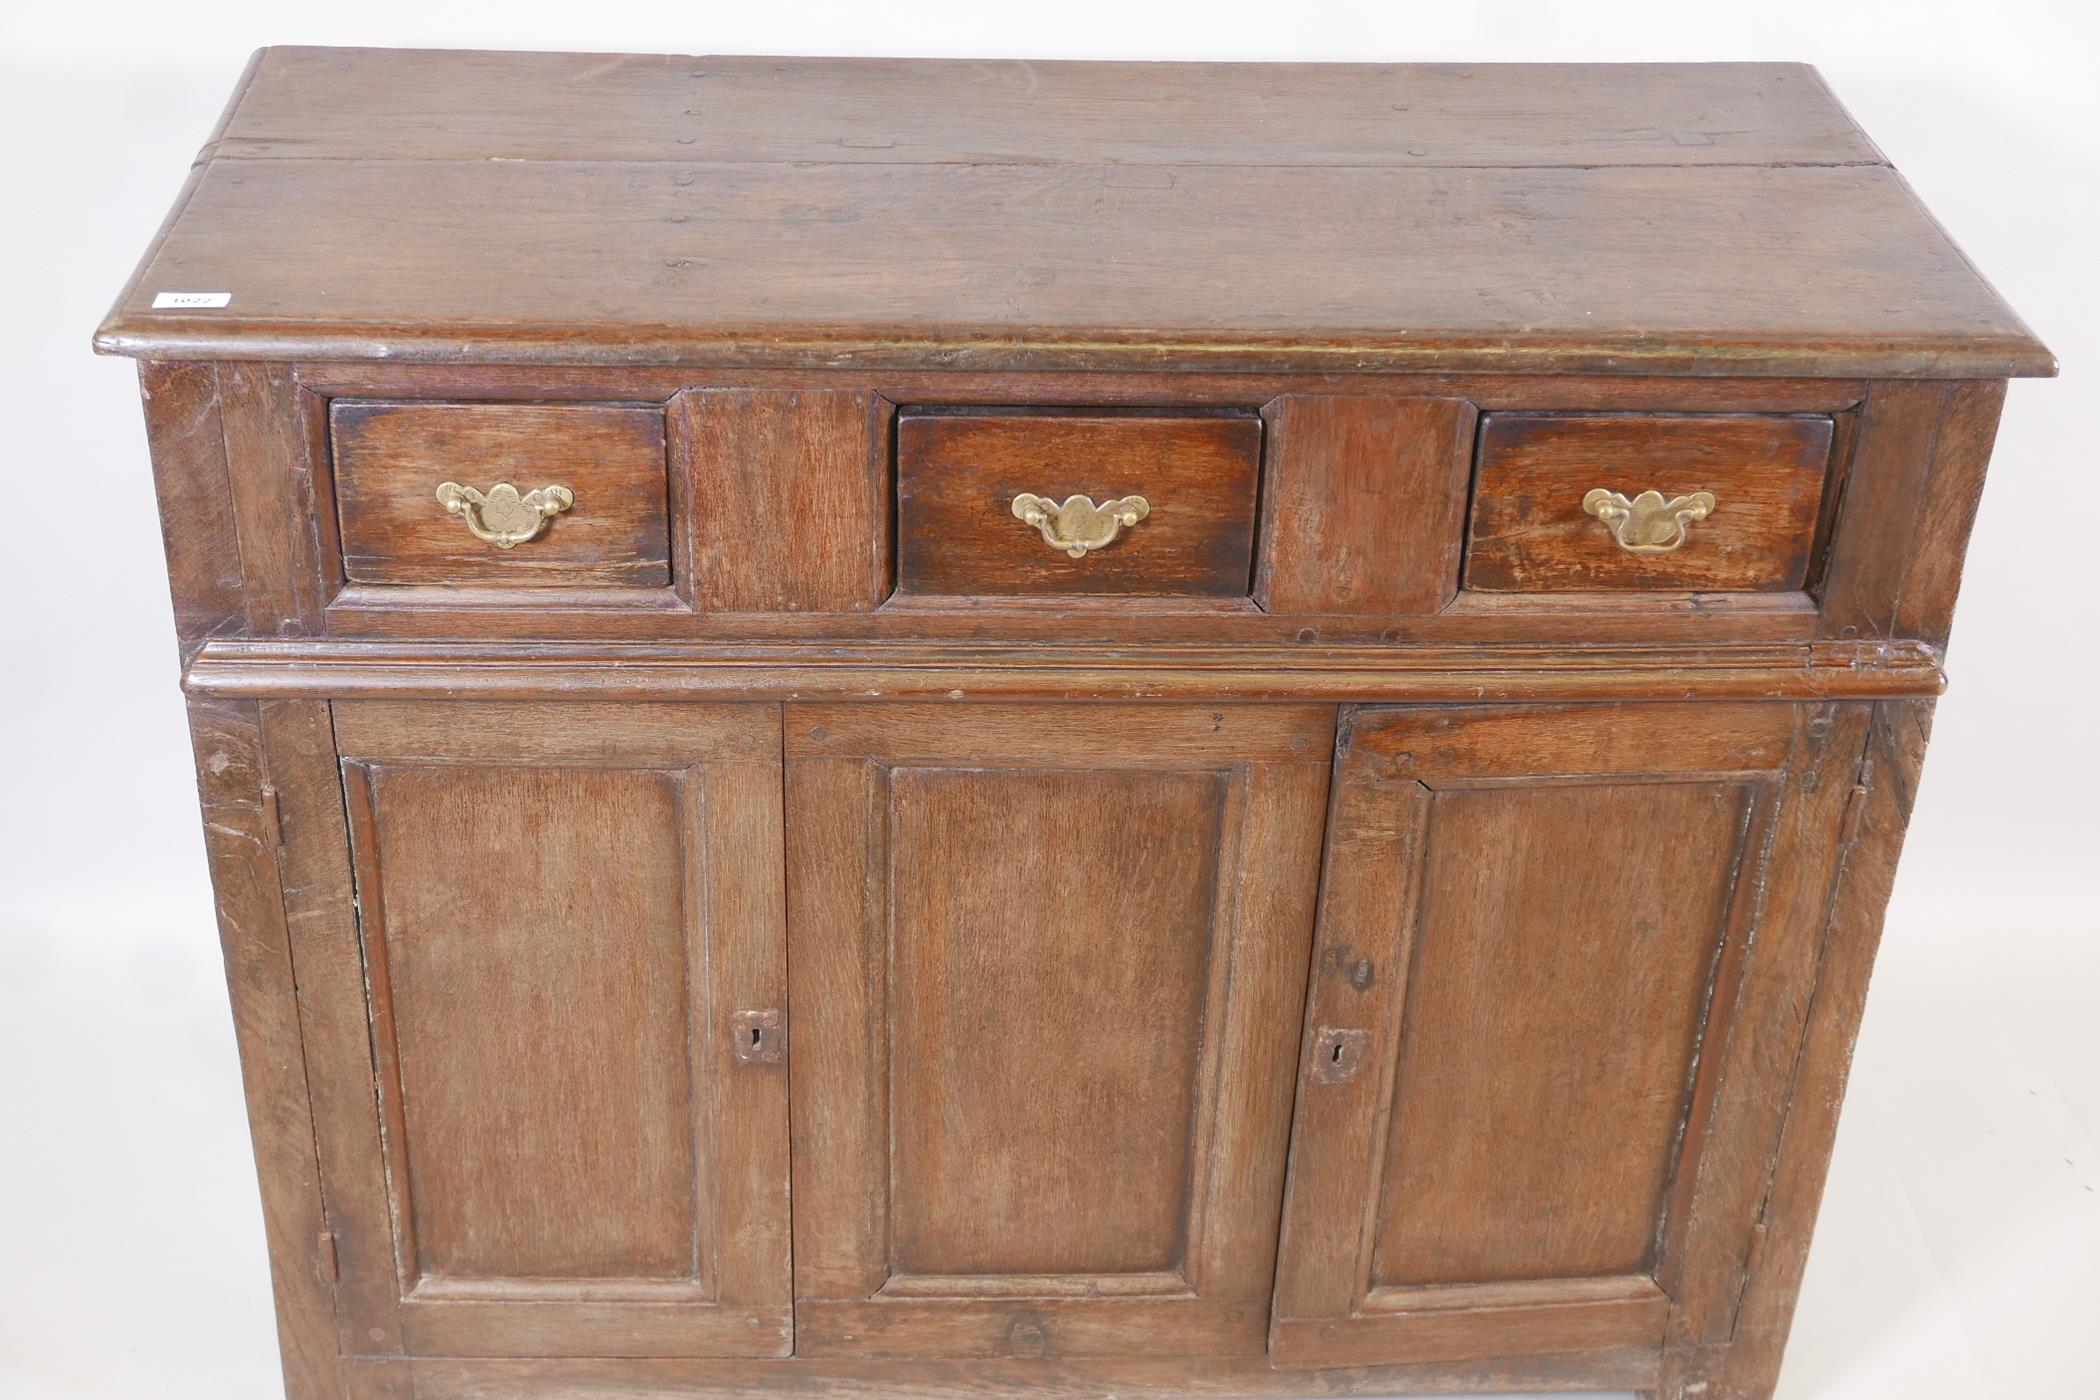 An antique oak side cabinet, with panelled ends and cupboards under three drawers, C18th and later - Image 3 of 5